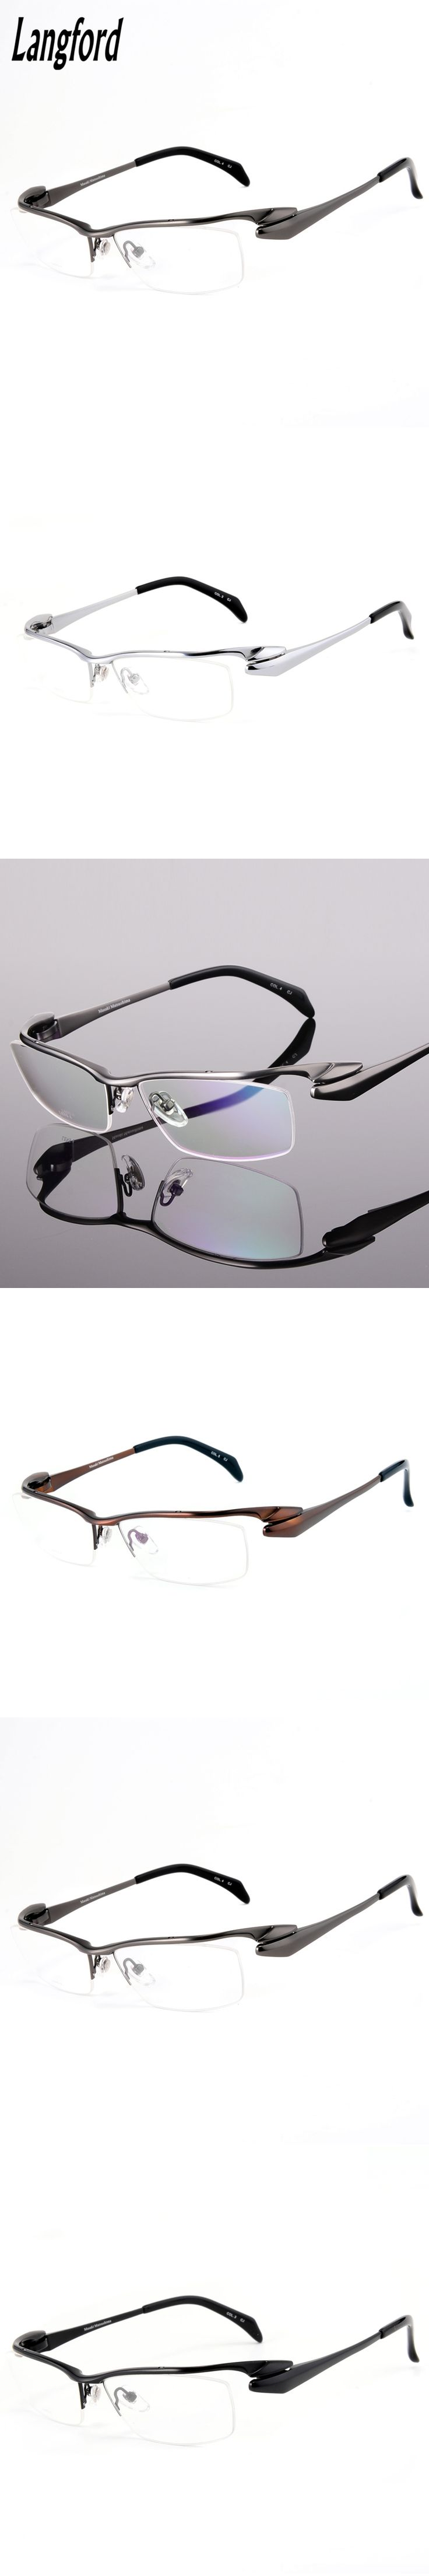 High-end pure titanium eyeglasses frame men optical glasses eyeware frame spectacle frames designs Streamline browline glasses